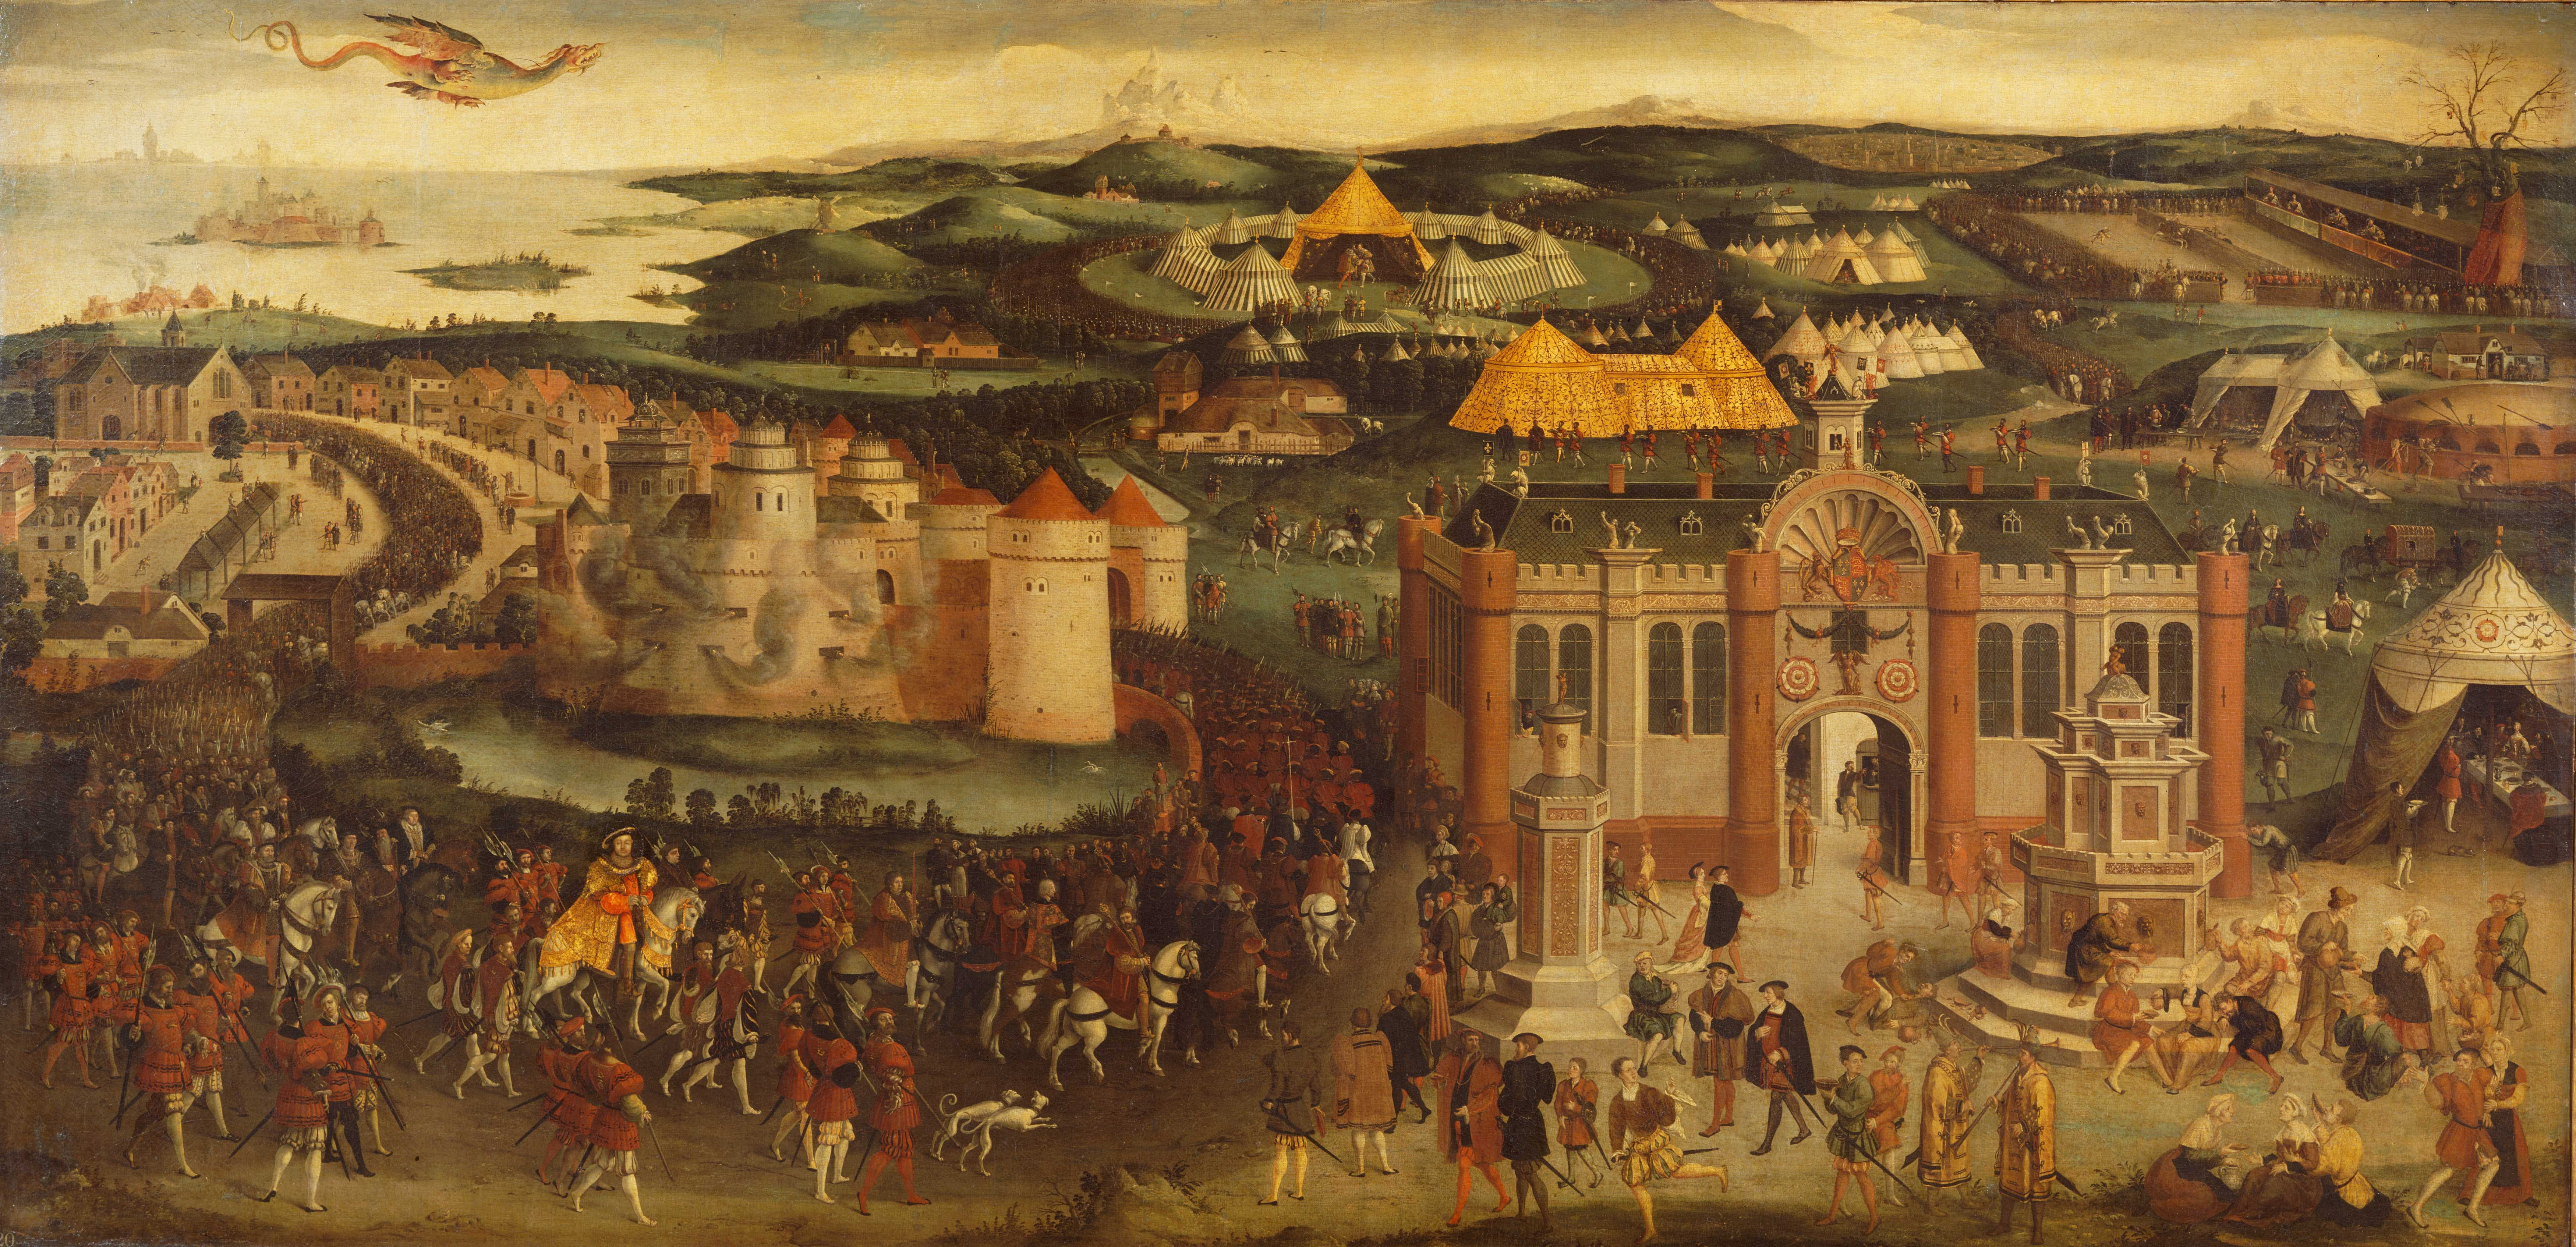 The Field of the Cloth of Gold depicting the meeting between Henry VIII and Francis I in 1520.